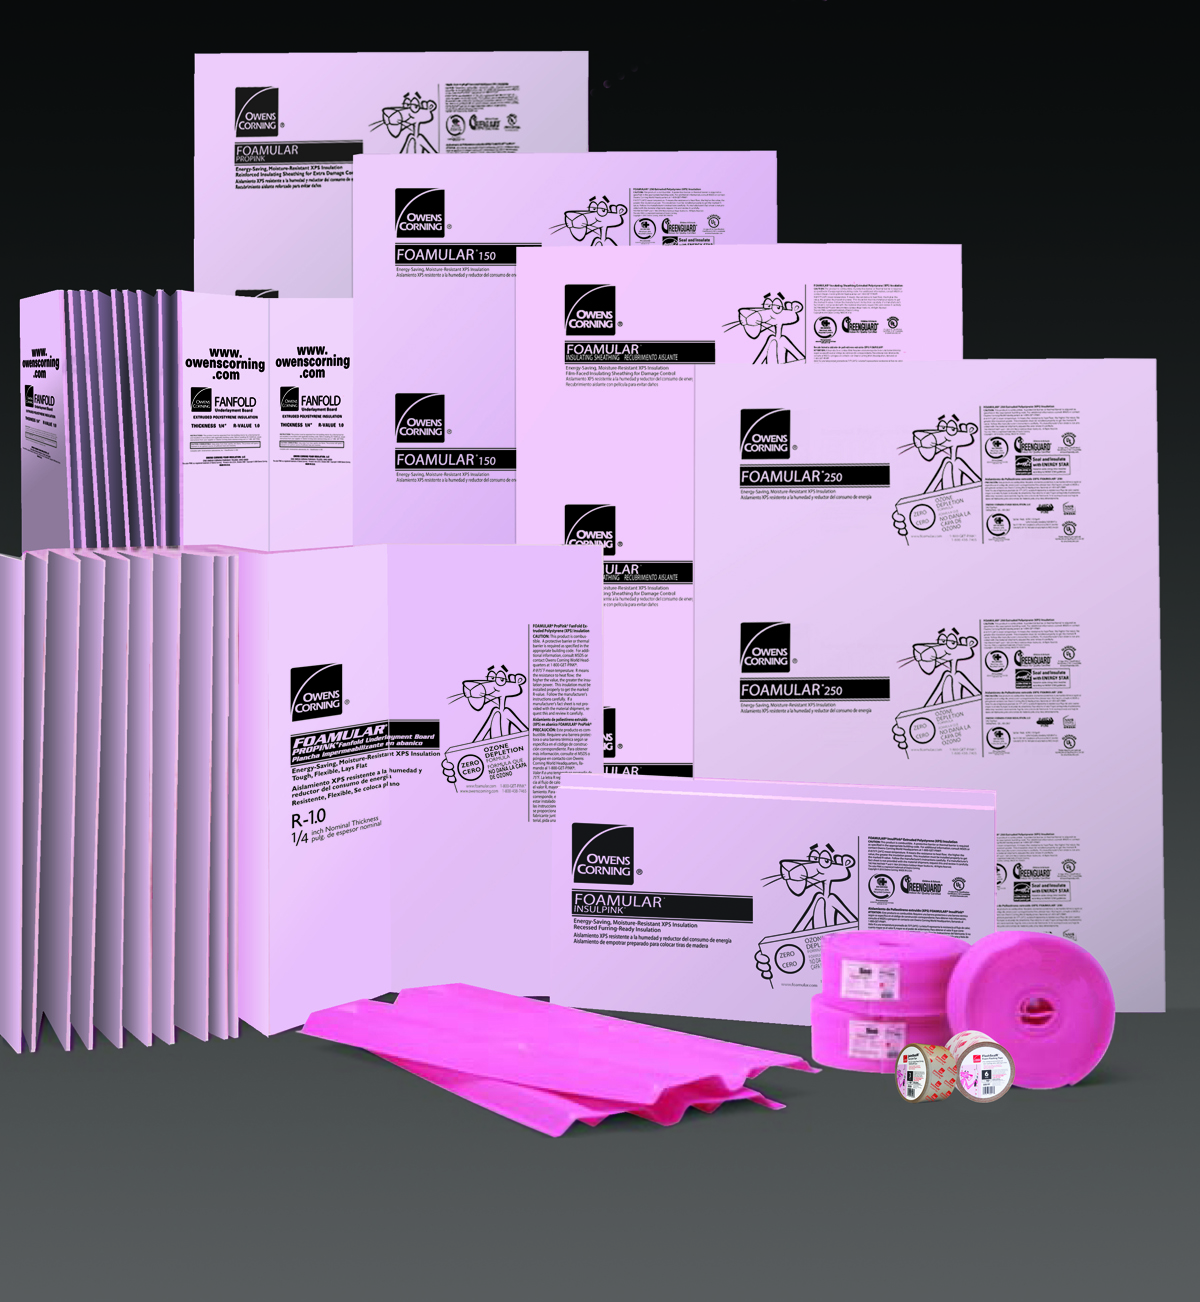 Owens Corning Announces First Environmental Product